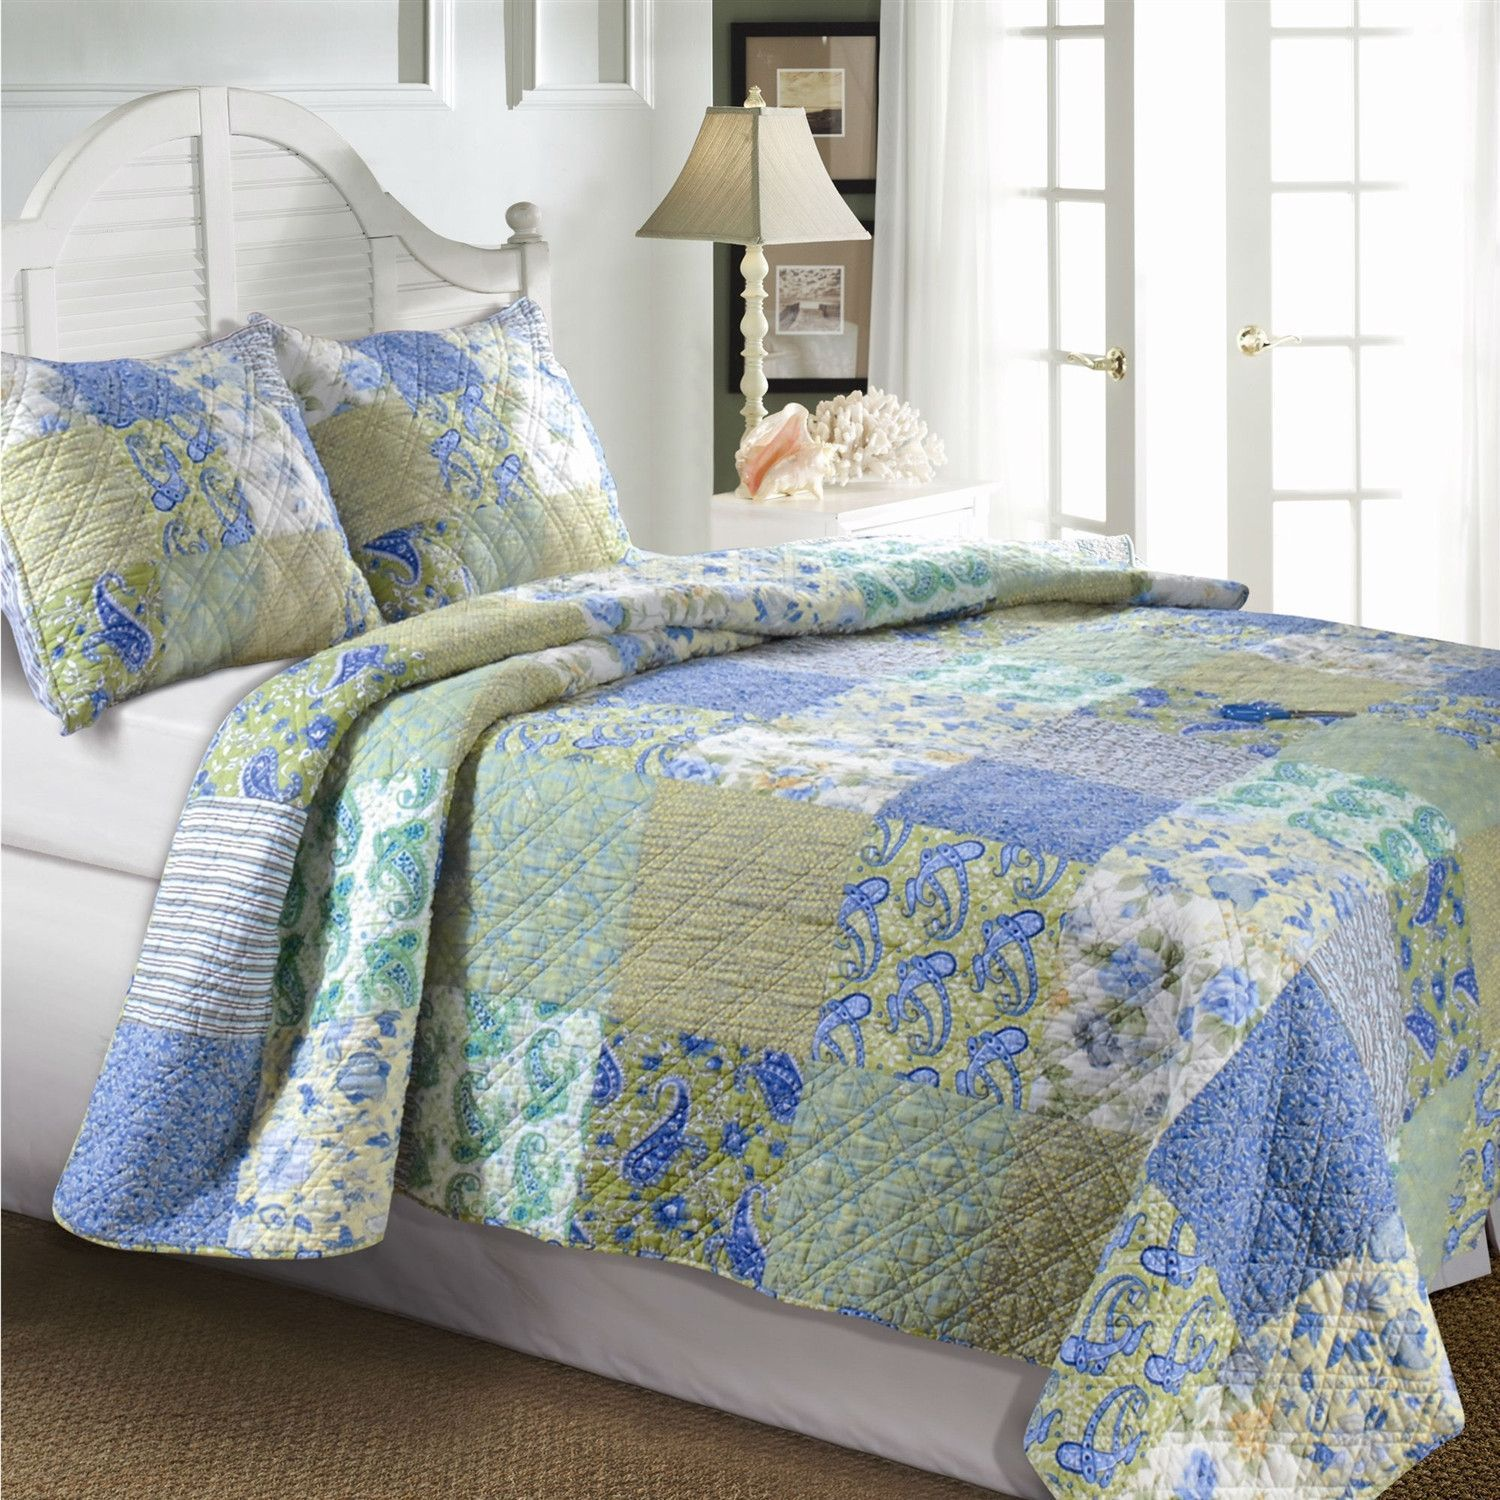 King Size Cotton Paisley Patchwork Quilt Set in Blue Green Yellow ... : cotton bed quilts - Adamdwight.com